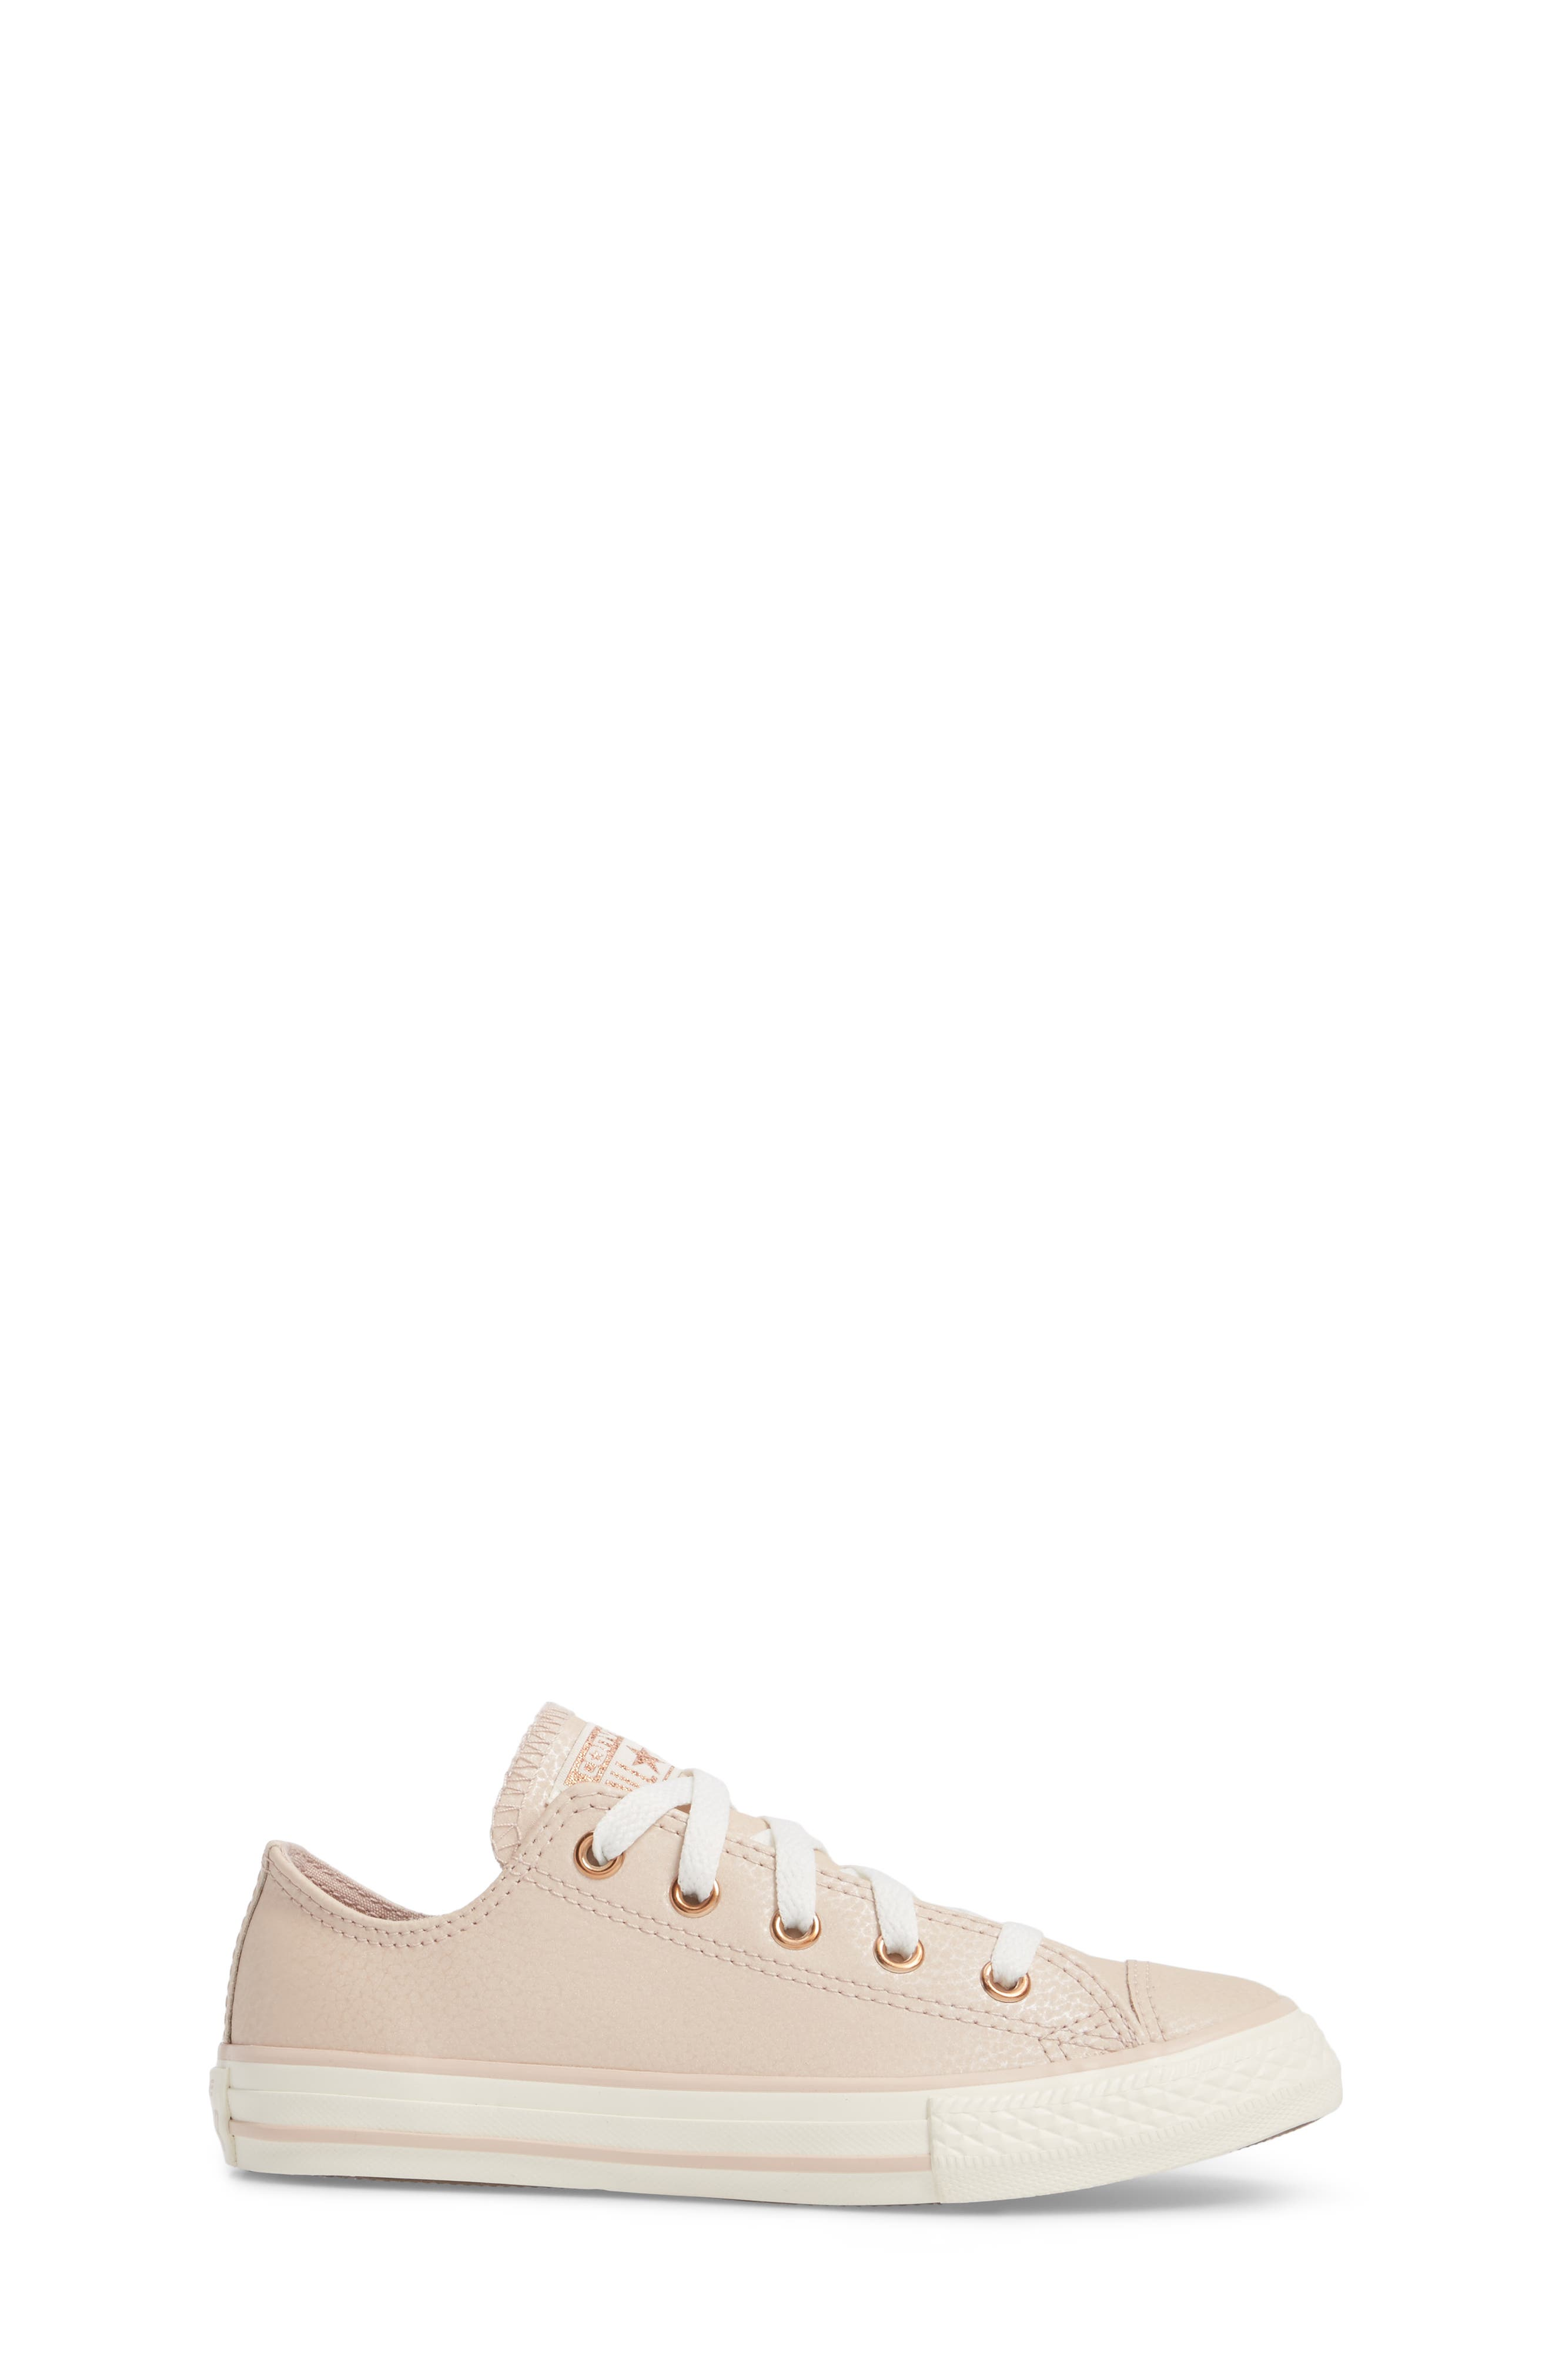 All Star<sup>®</sup> Fashion Low Top Sneaker,                             Alternate thumbnail 3, color,                             Particle Beige